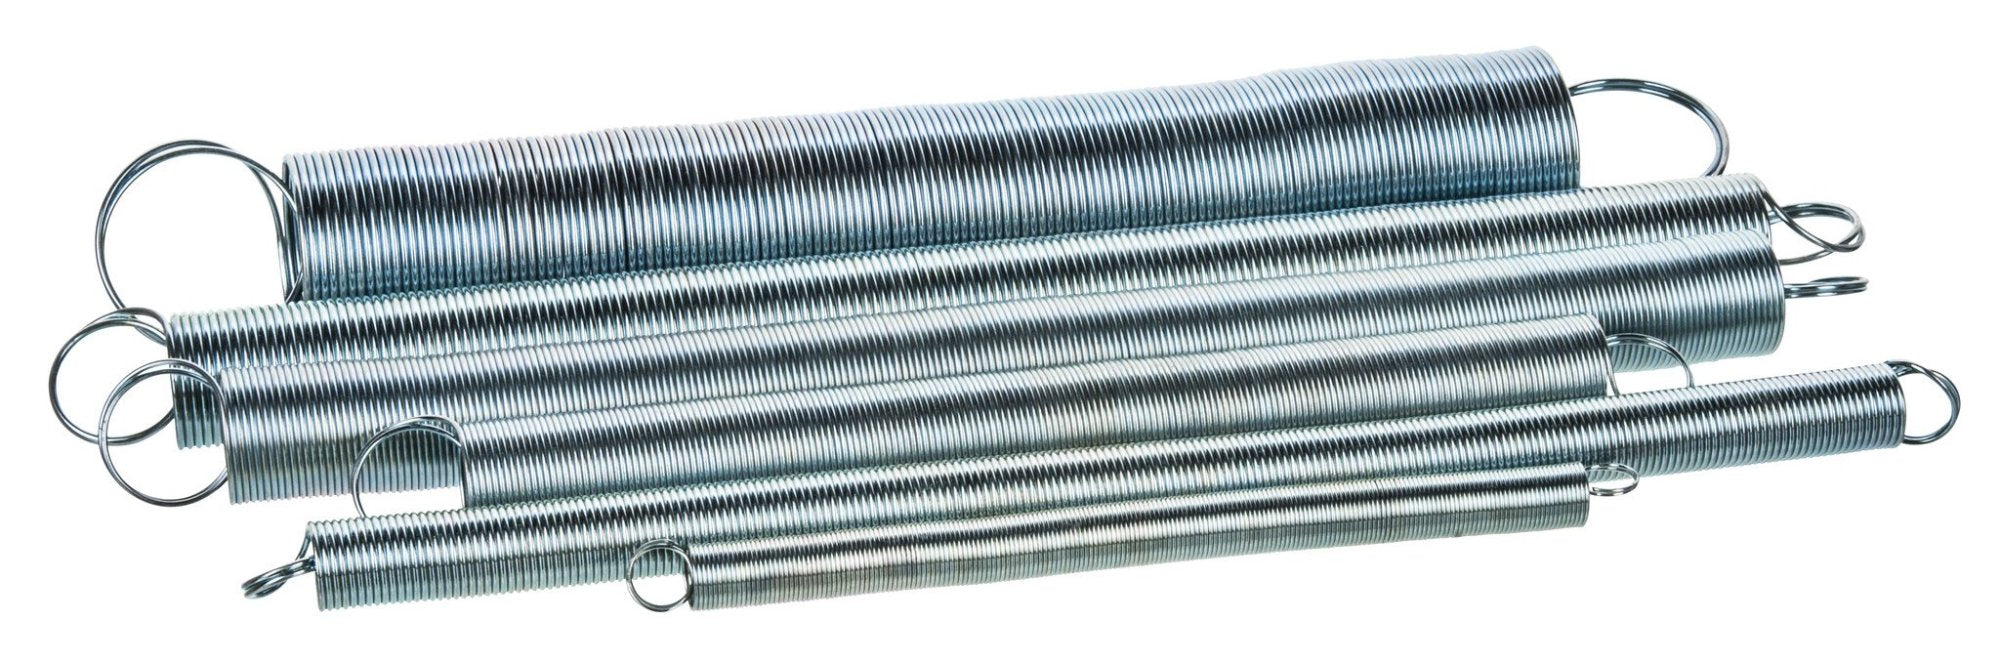 Set of 6 Springs - Steel - Looped Ends - Flexible Length Approximately 10-20cm - Eisco Labs